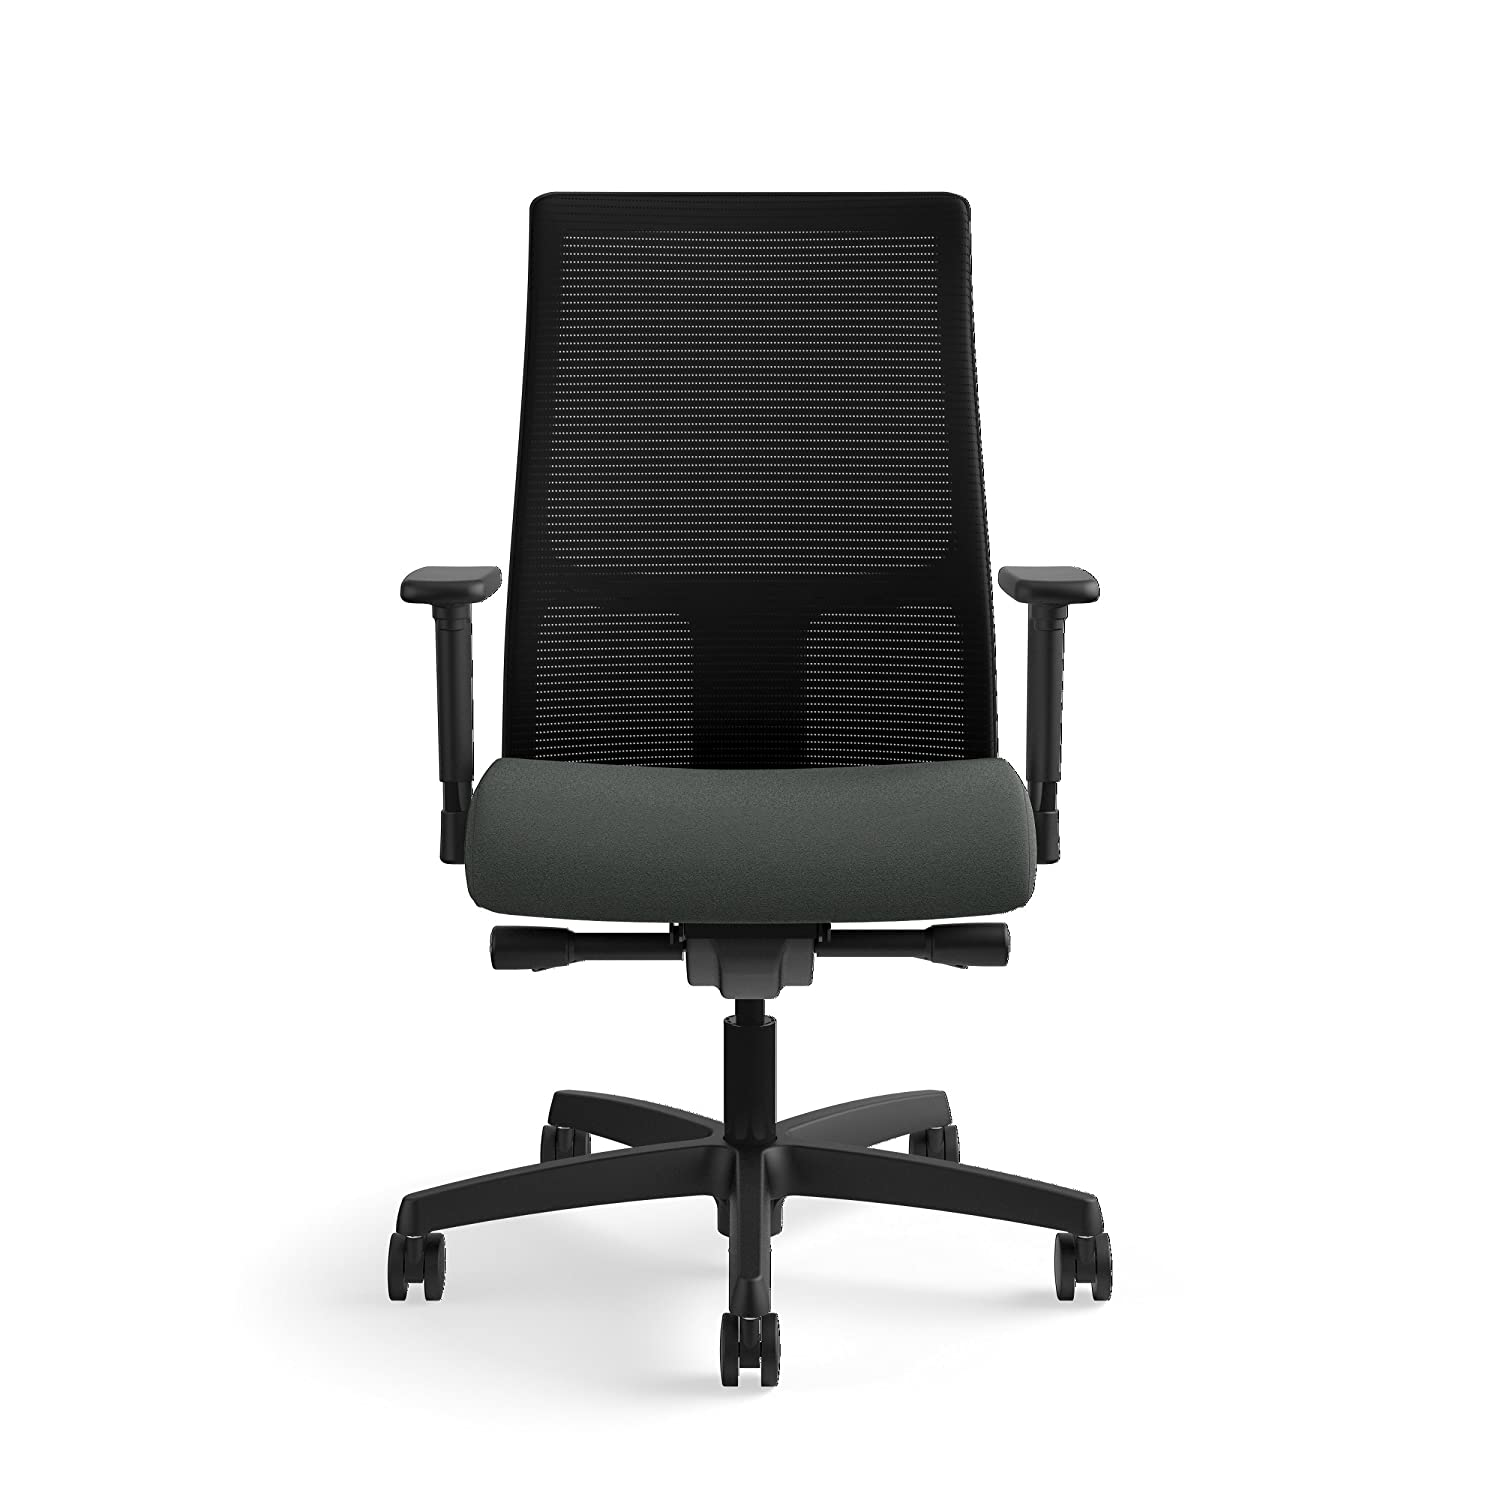 HON Ignition Series Mid-Back Work Chair – Mesh Computer Chair for Office Desk, Iron Ore HIWM2